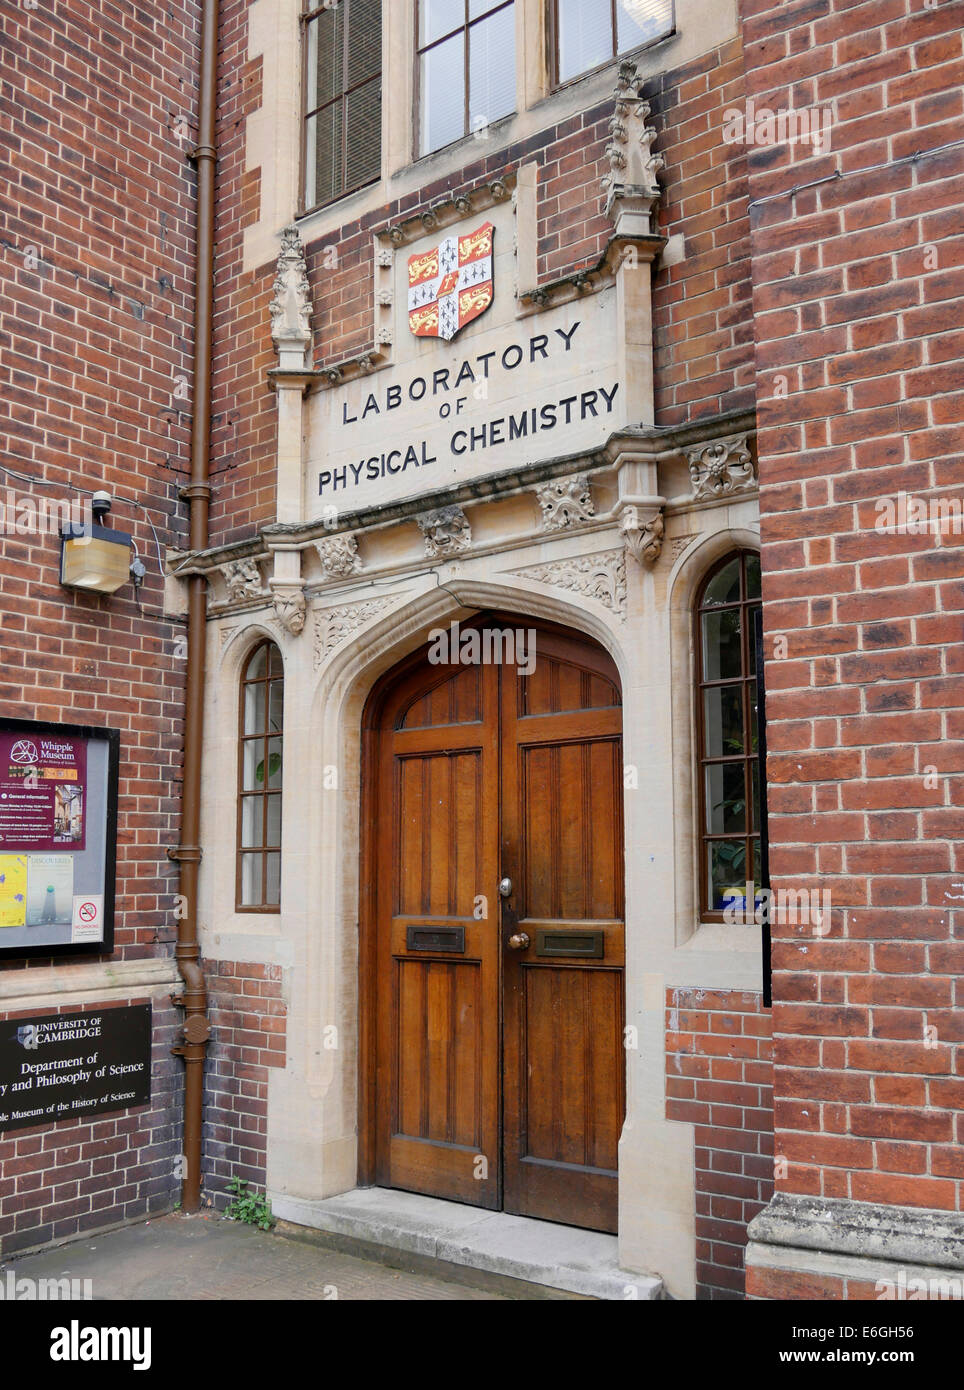 Laboratory of Physical Chemistry Department of Chemistry Cambridge England - Stock Image